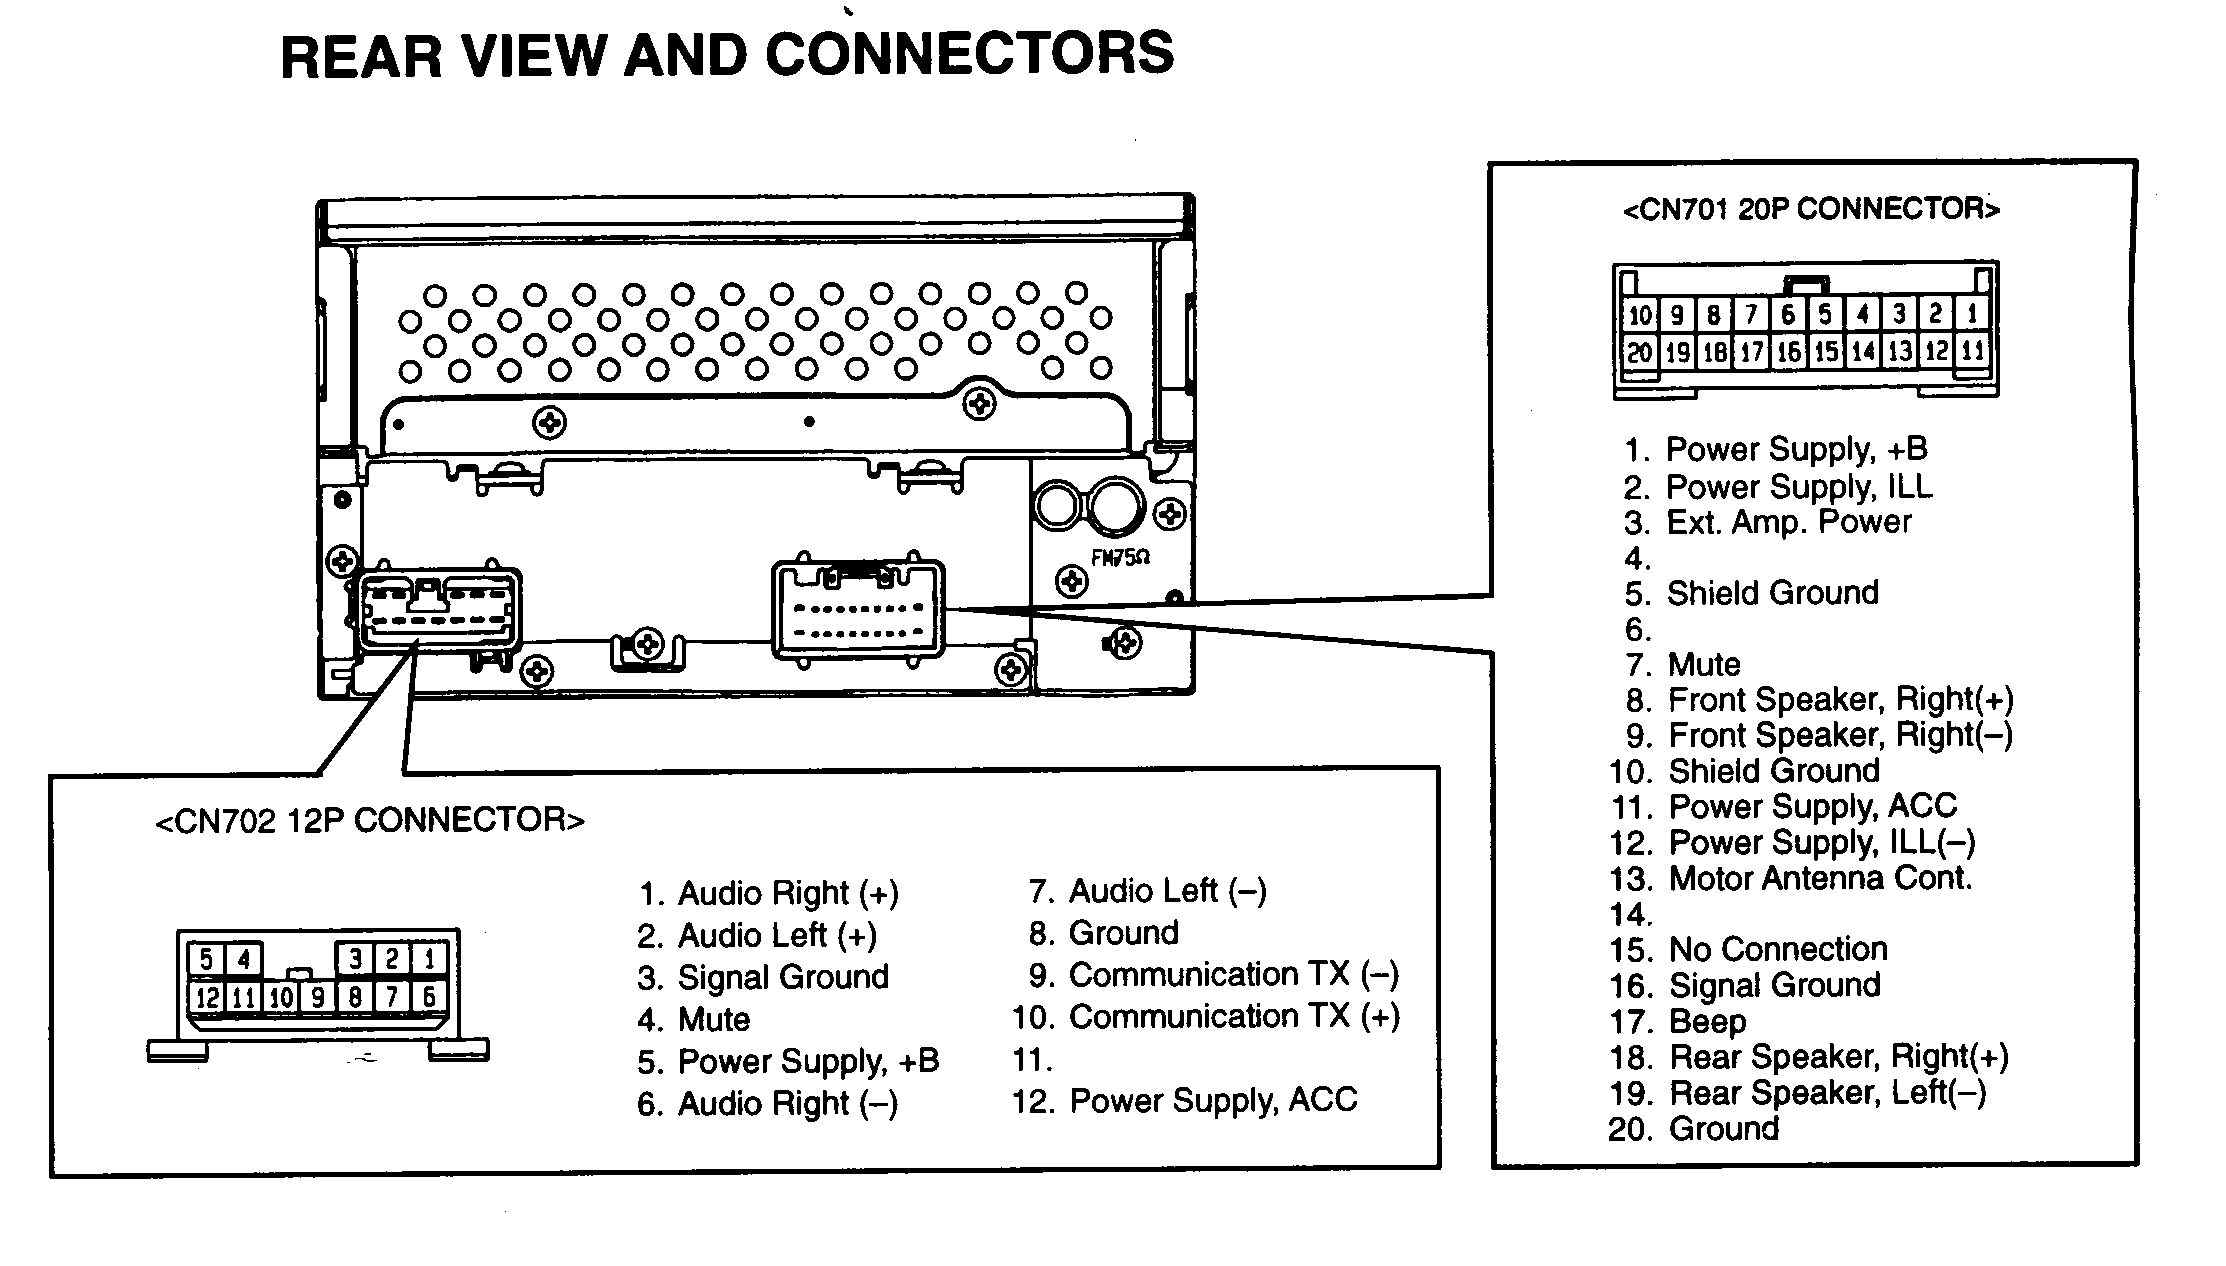 Car Radio Wiring Diagram Chevrolet Reinvent Your Gm Wire Harness 2000 Silverado Factory Stereo Diagrams Detailed Schematics Rh Lelandlutheran Com 2004